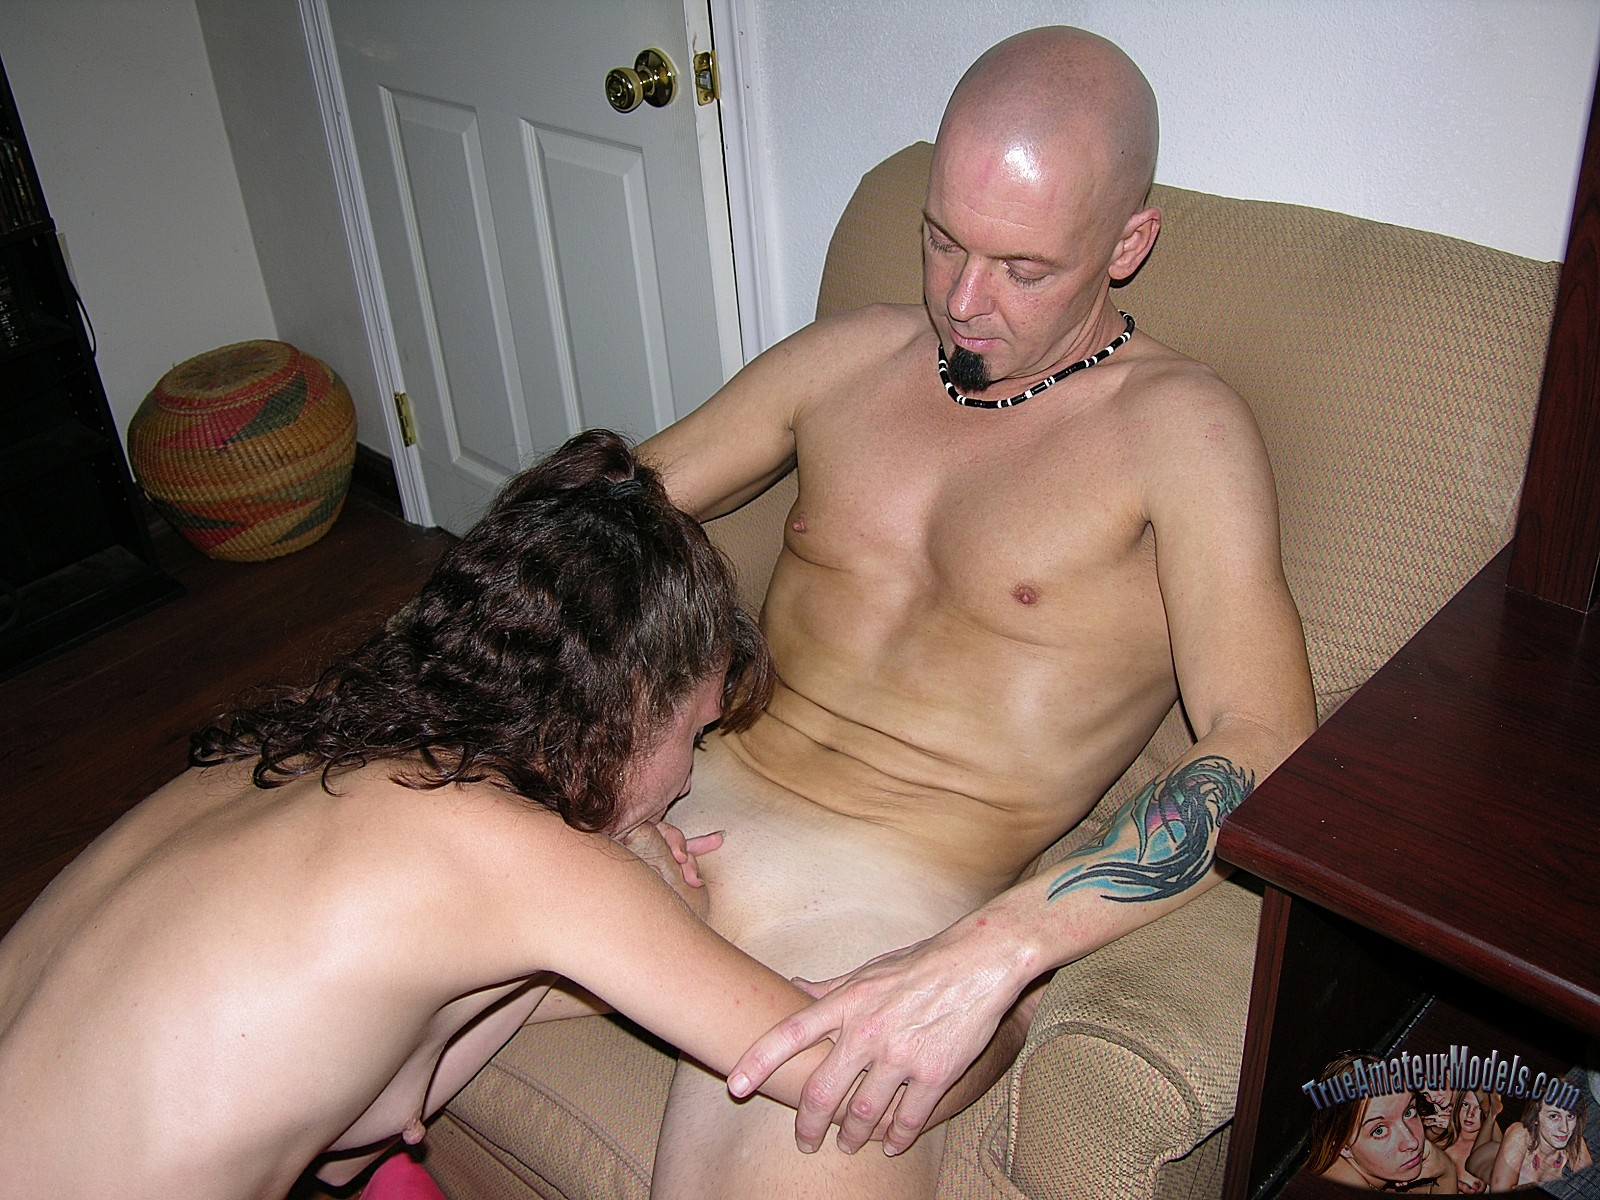 Mom Gives Son First Blowjob